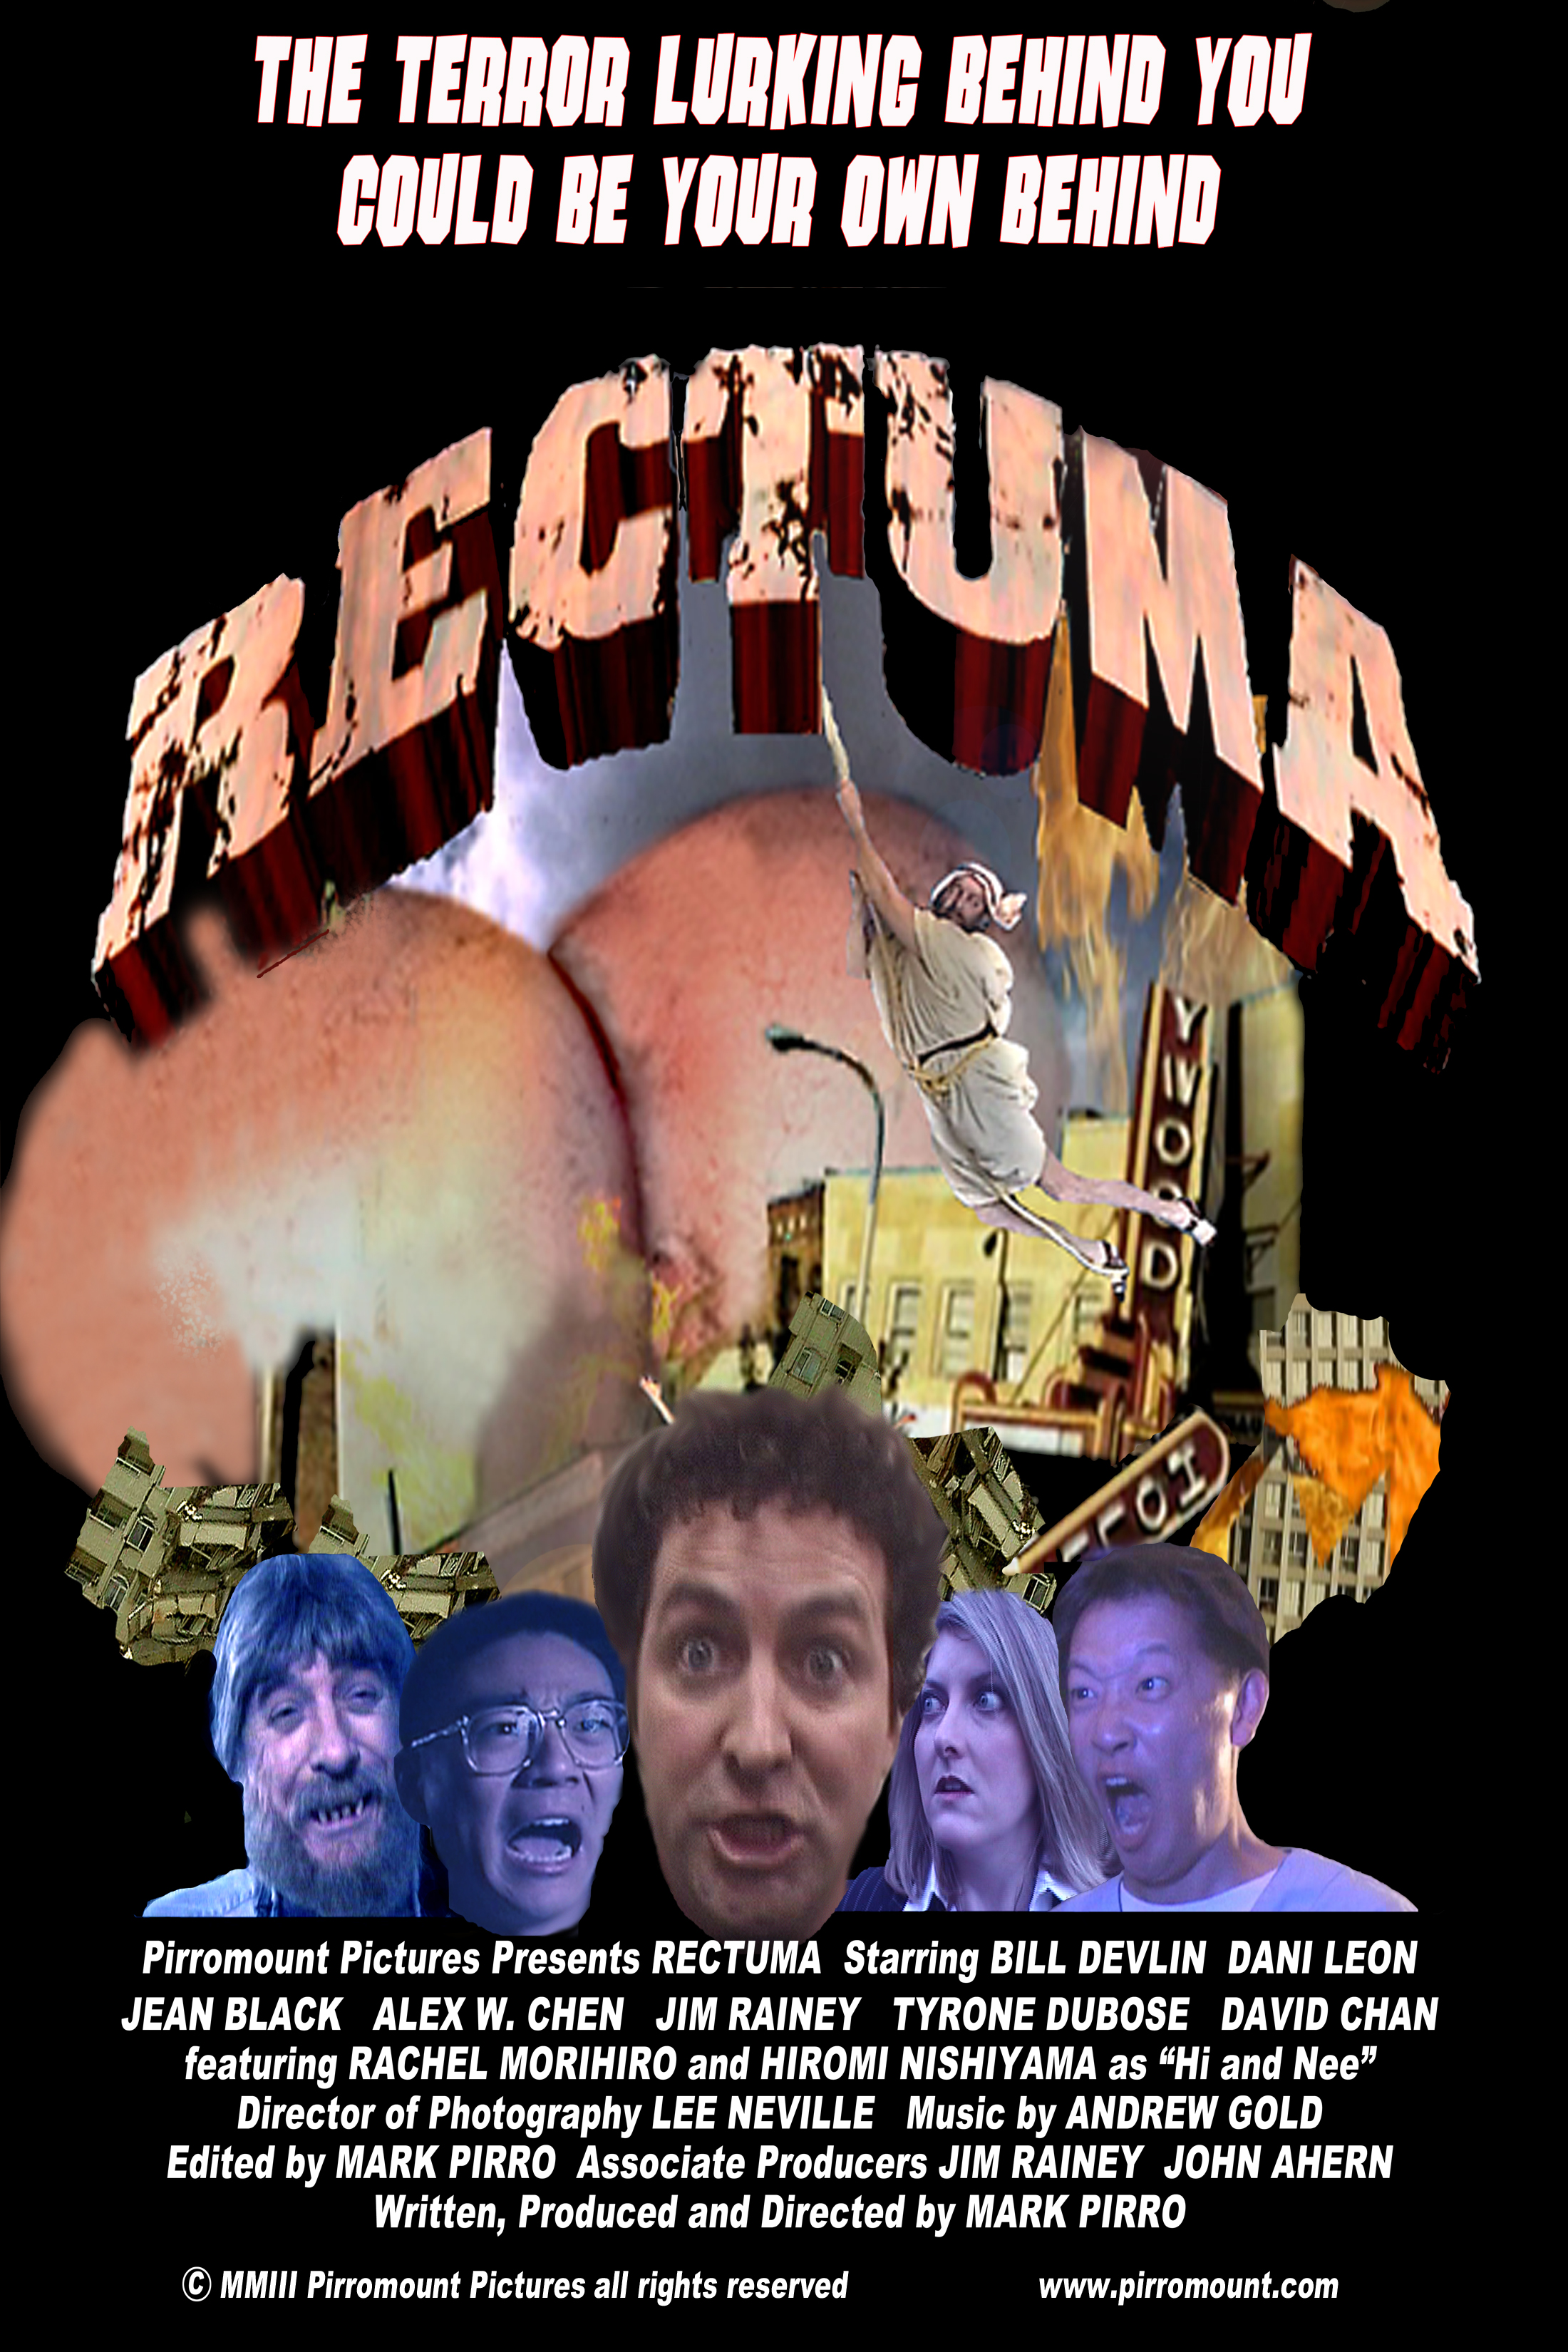 Rectuma (2003) approximately $1000 budget total